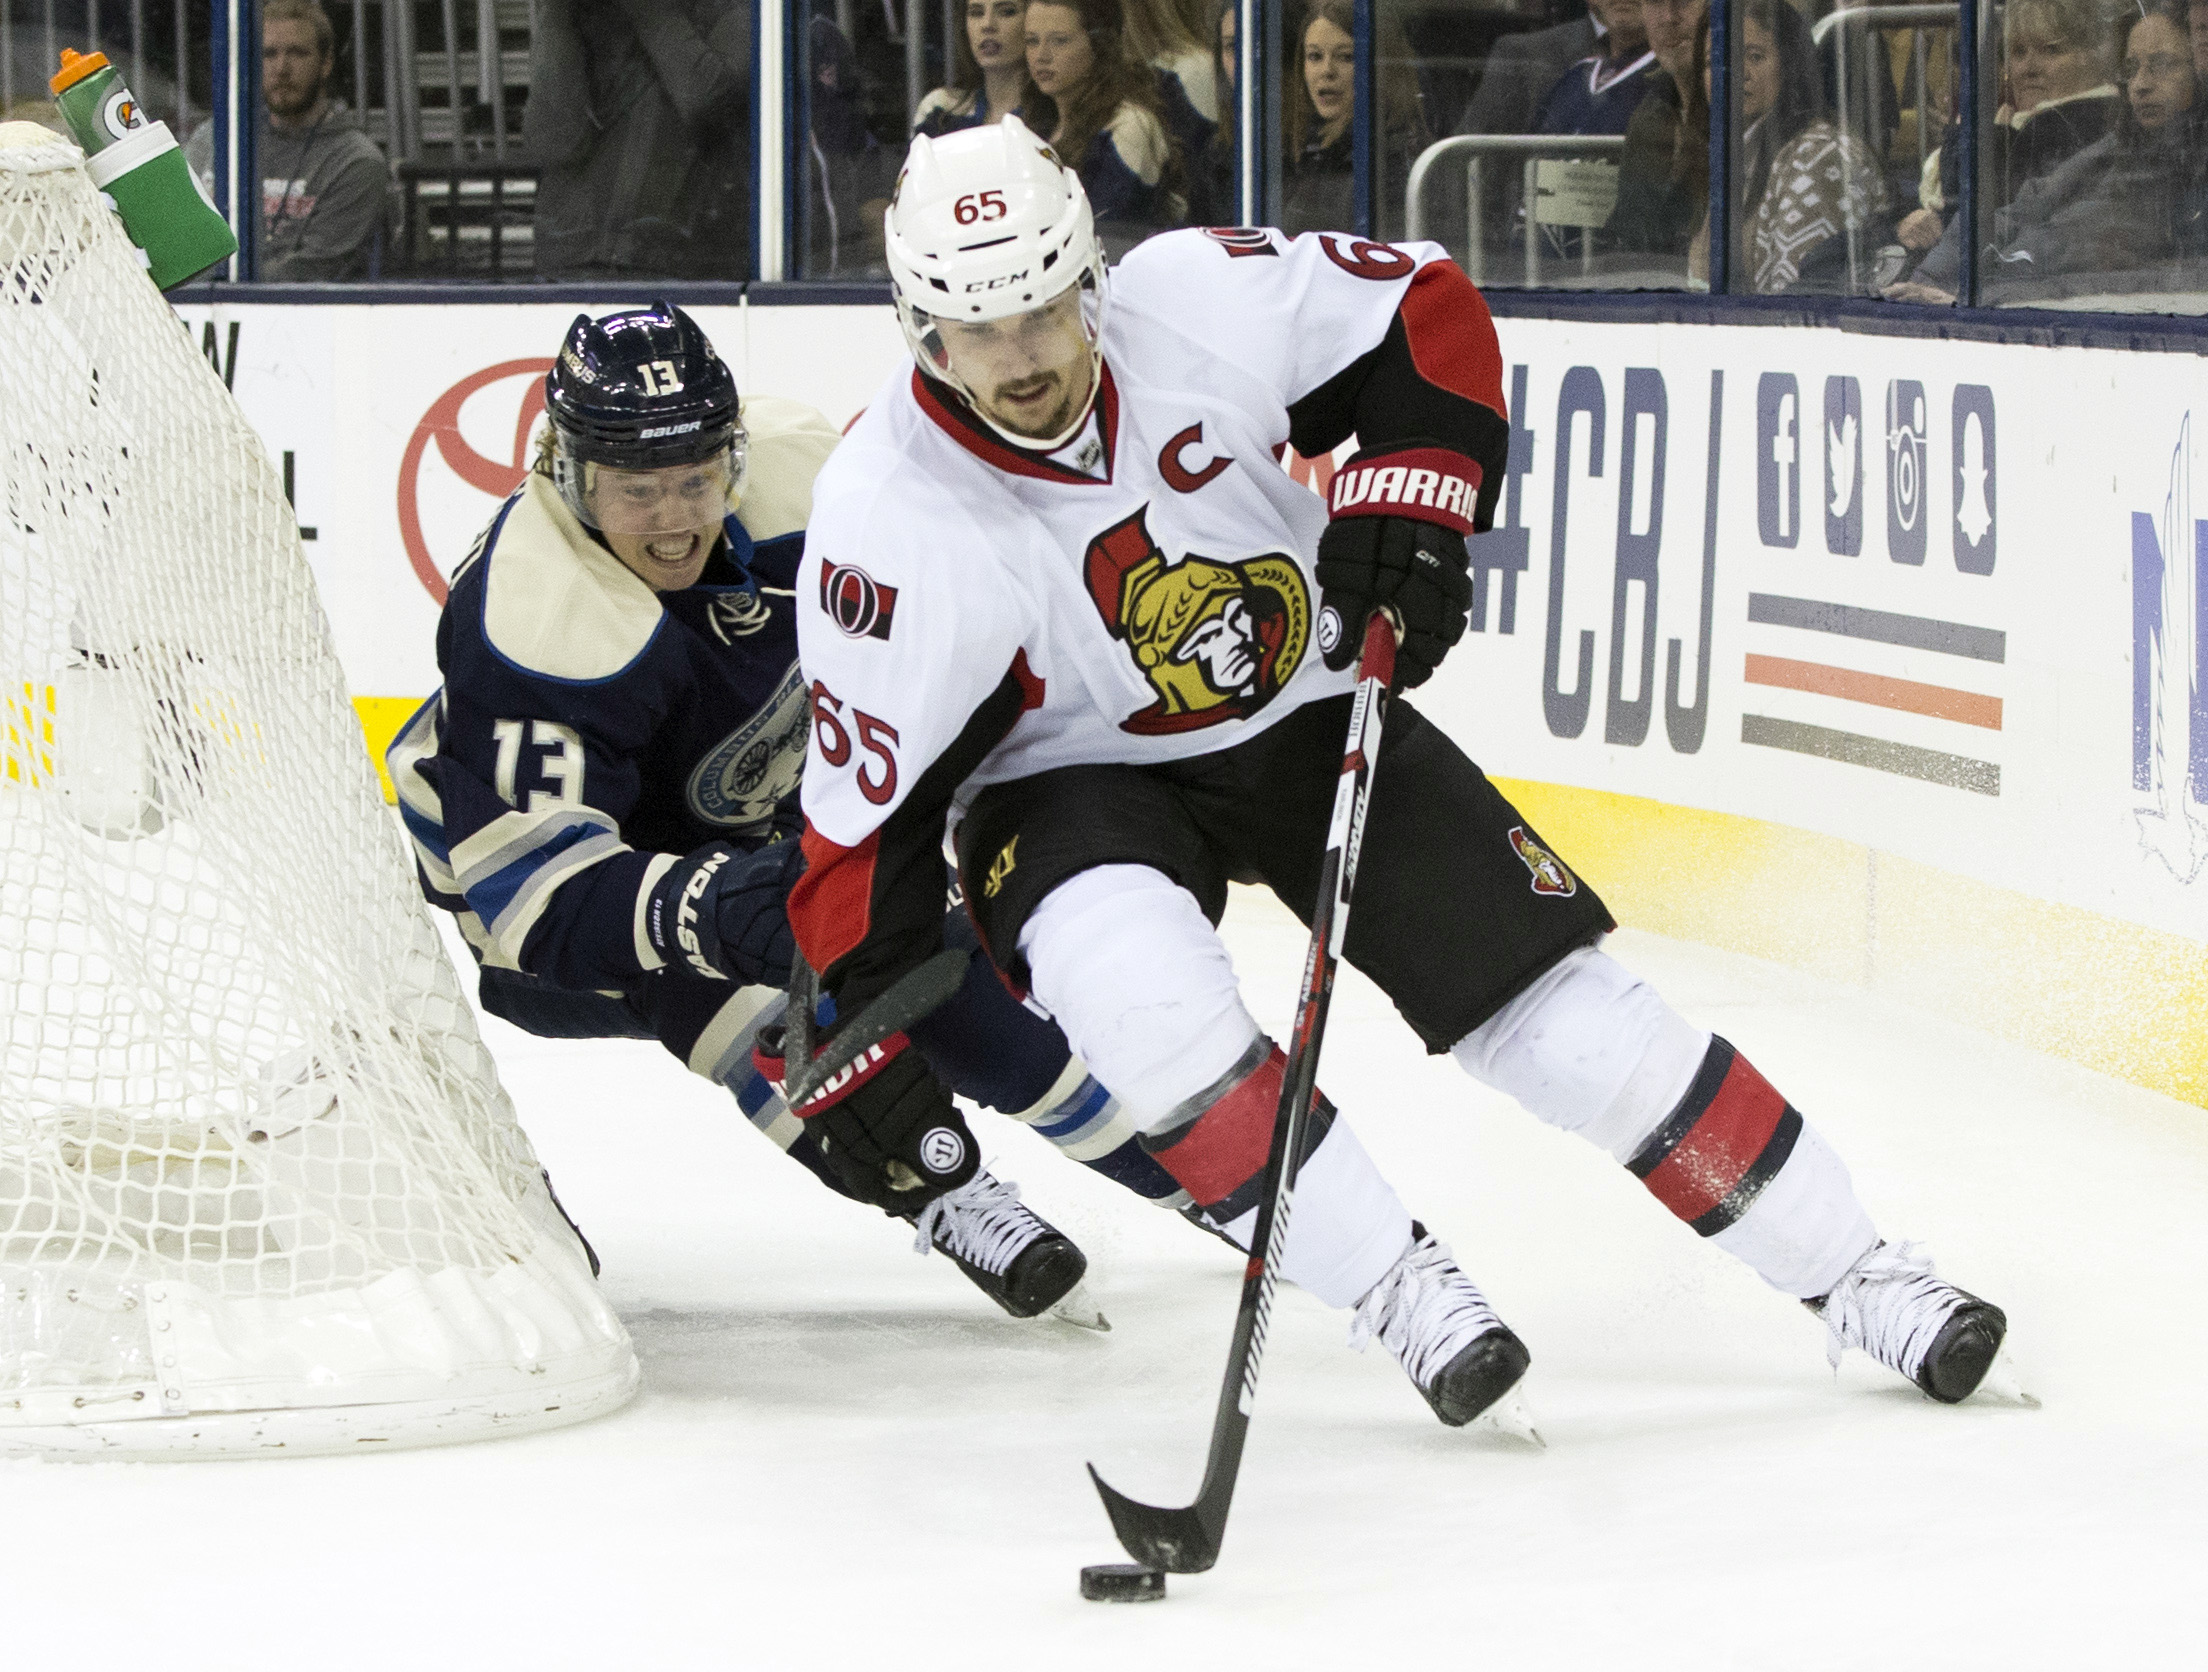 Karlsson holds off Atkinson on the forecheck